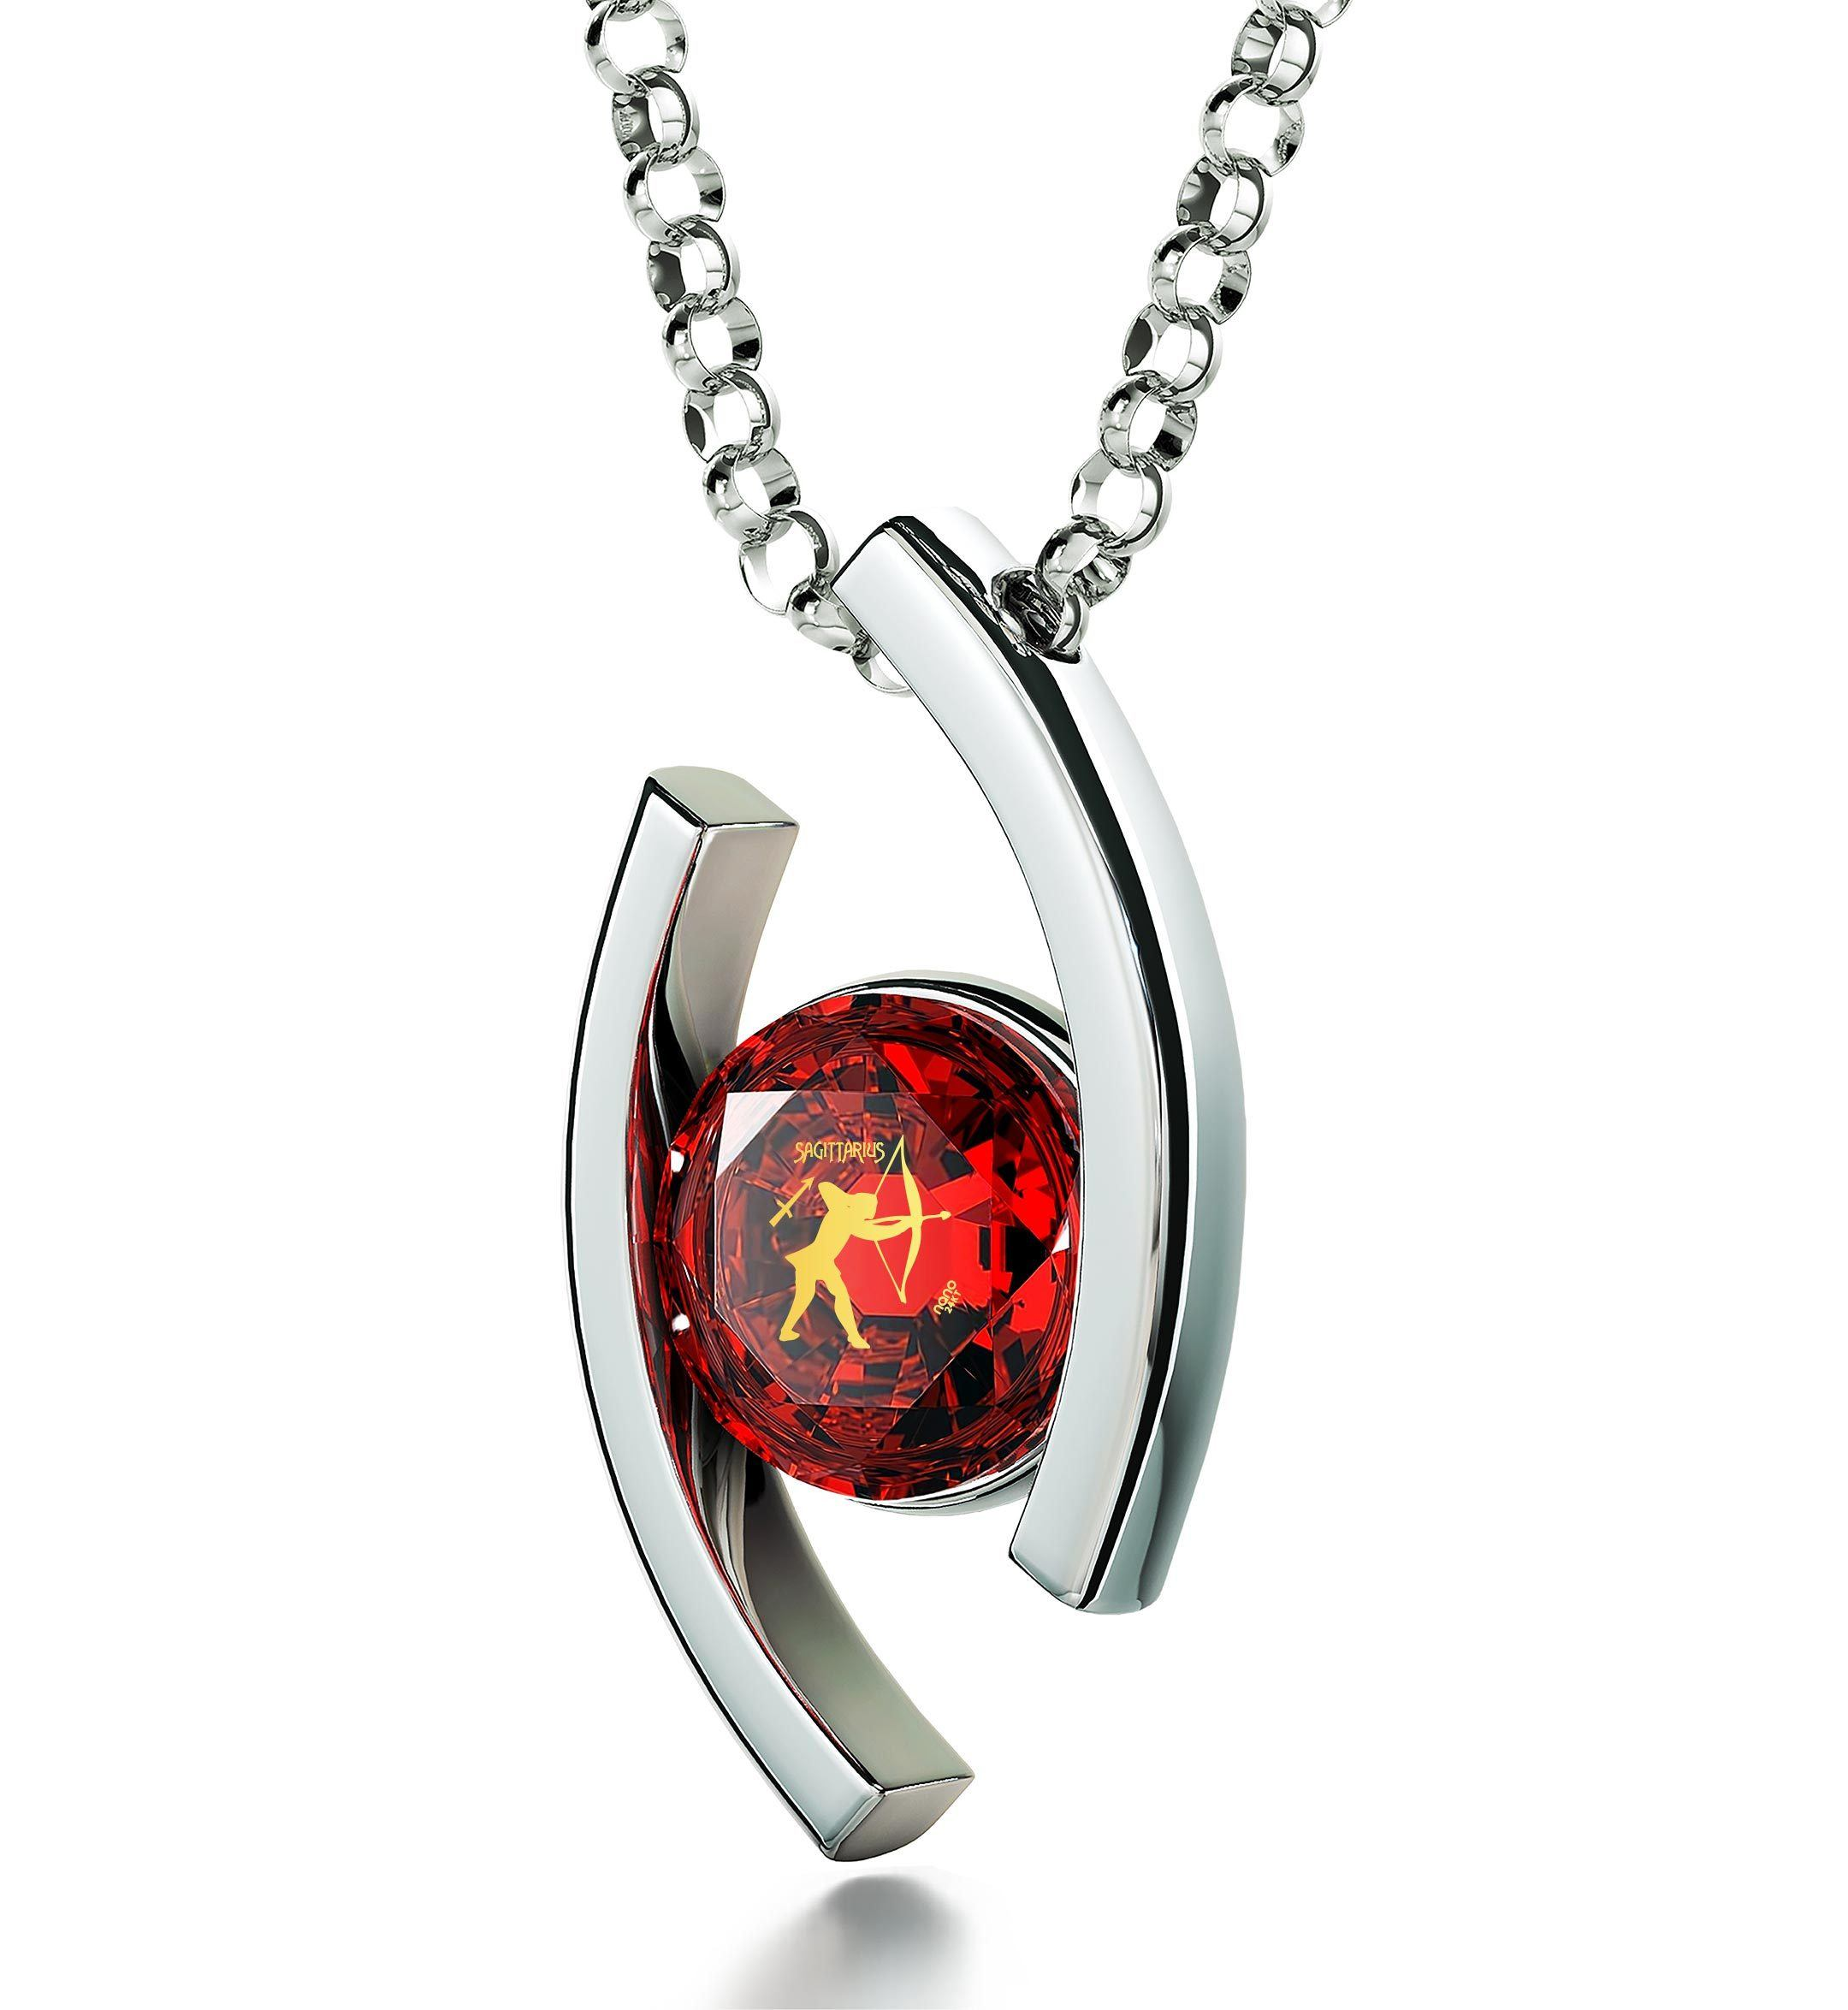 Sagittarius Jewelry With Zodiac Imprint, Best Valentine Gift for Wife, Good Christmas Present Ideas, Red Pendant Necklace